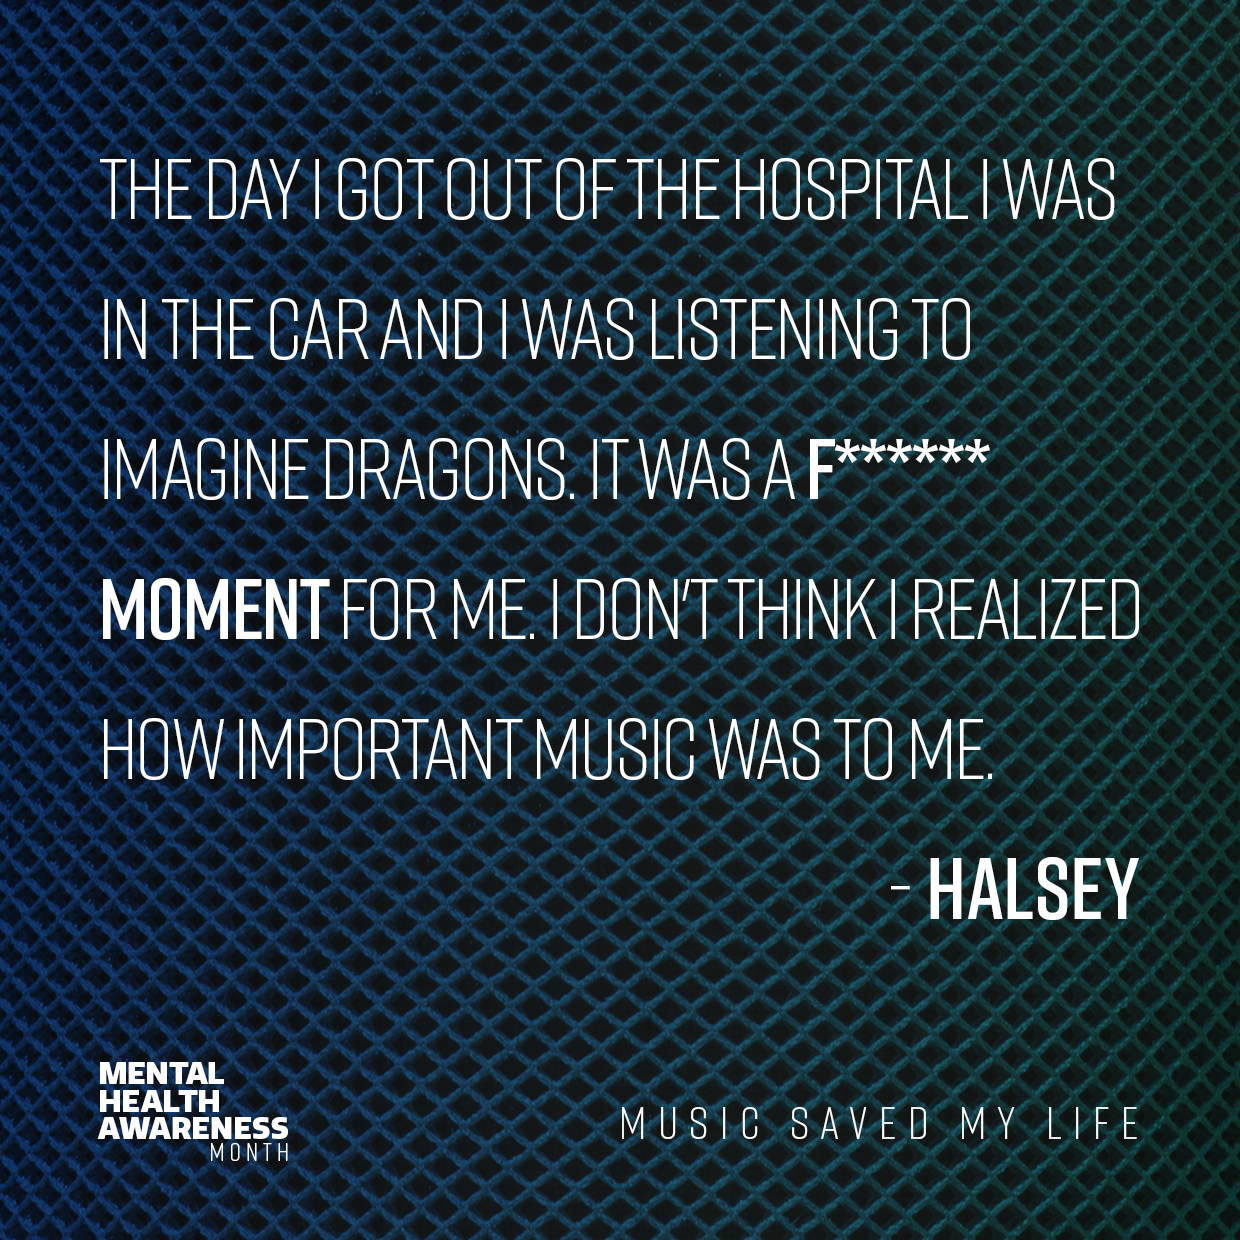 Halsey quote for Mental Health Awareness Month 2018